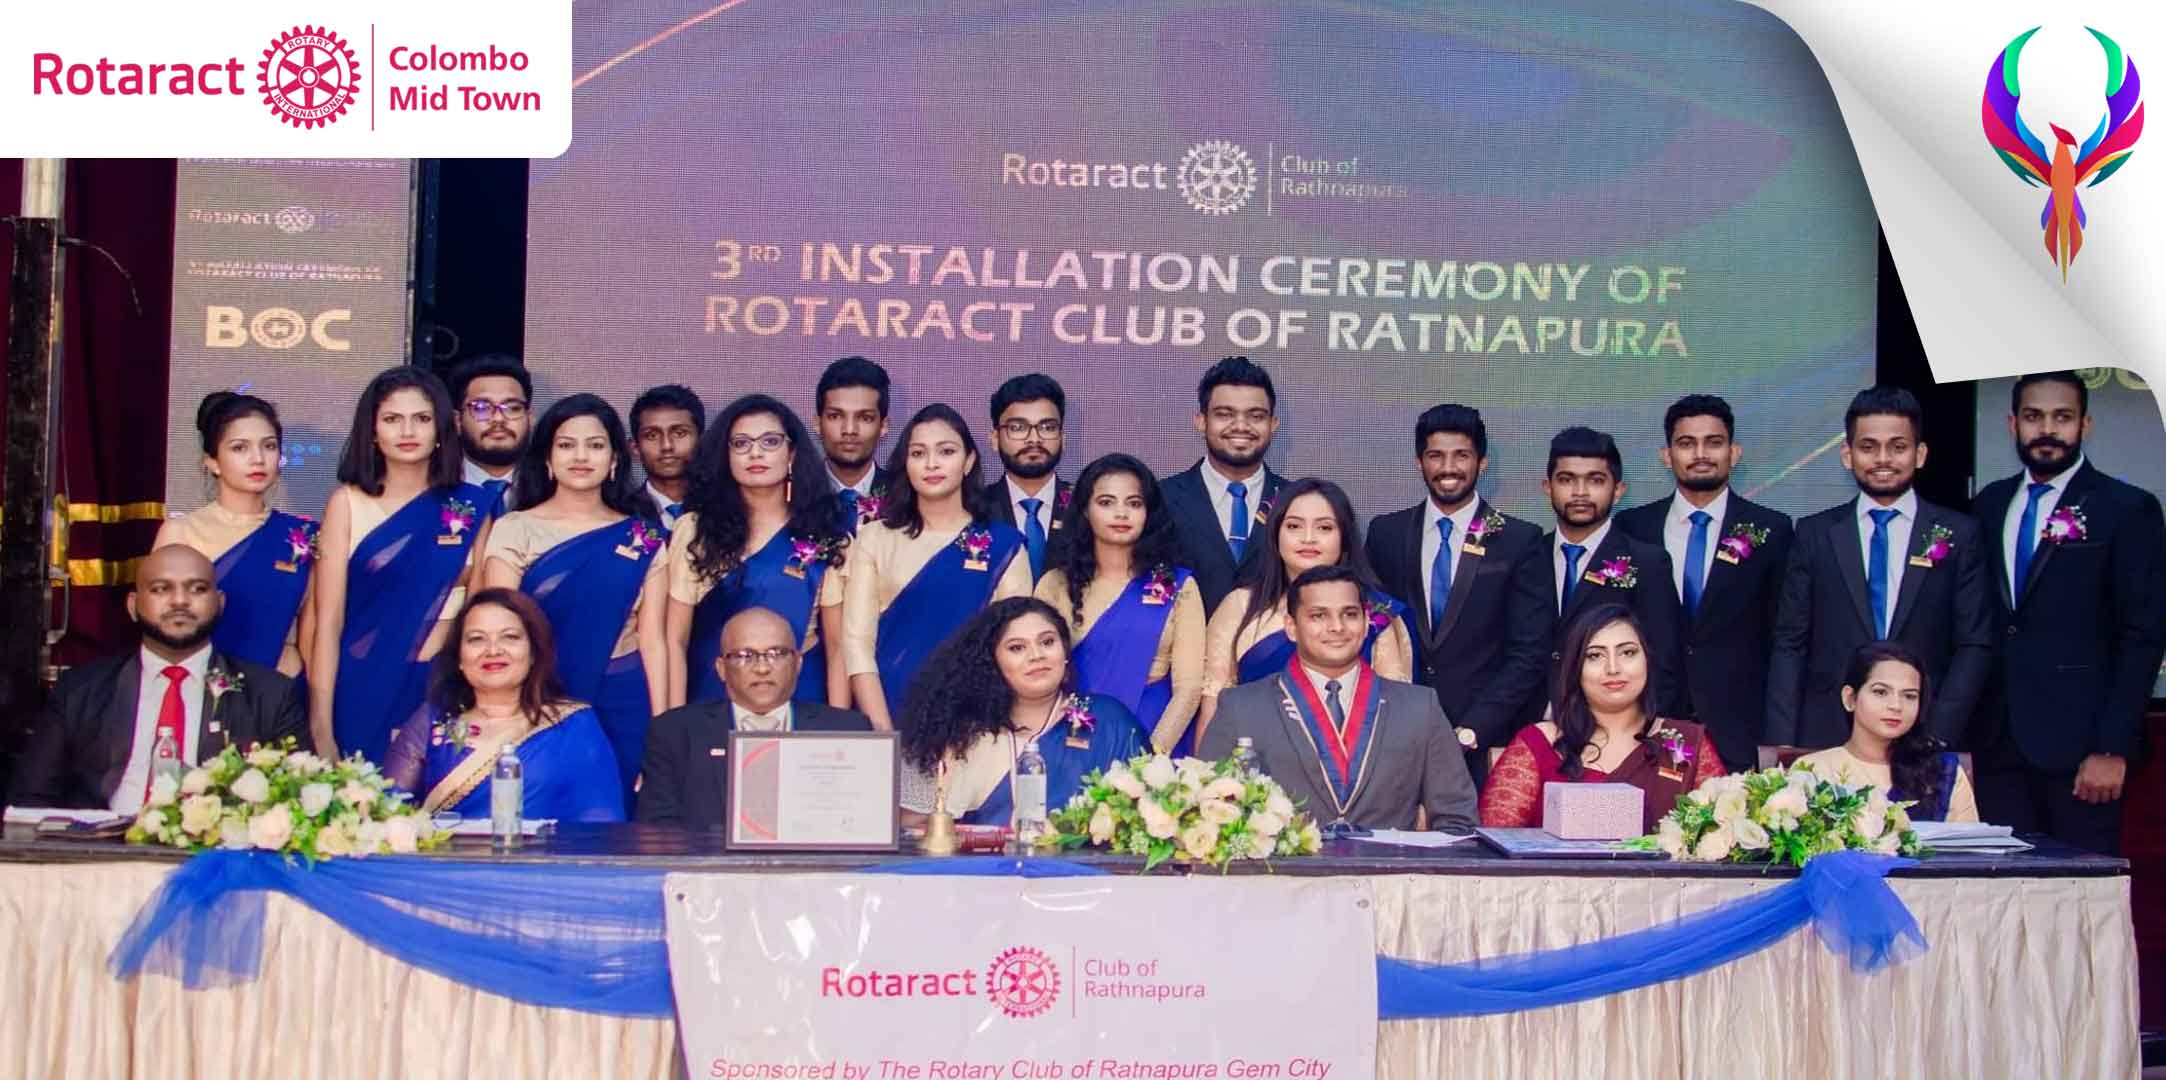 Installation Ceremony of the Rotaract Club of Ratnapura.